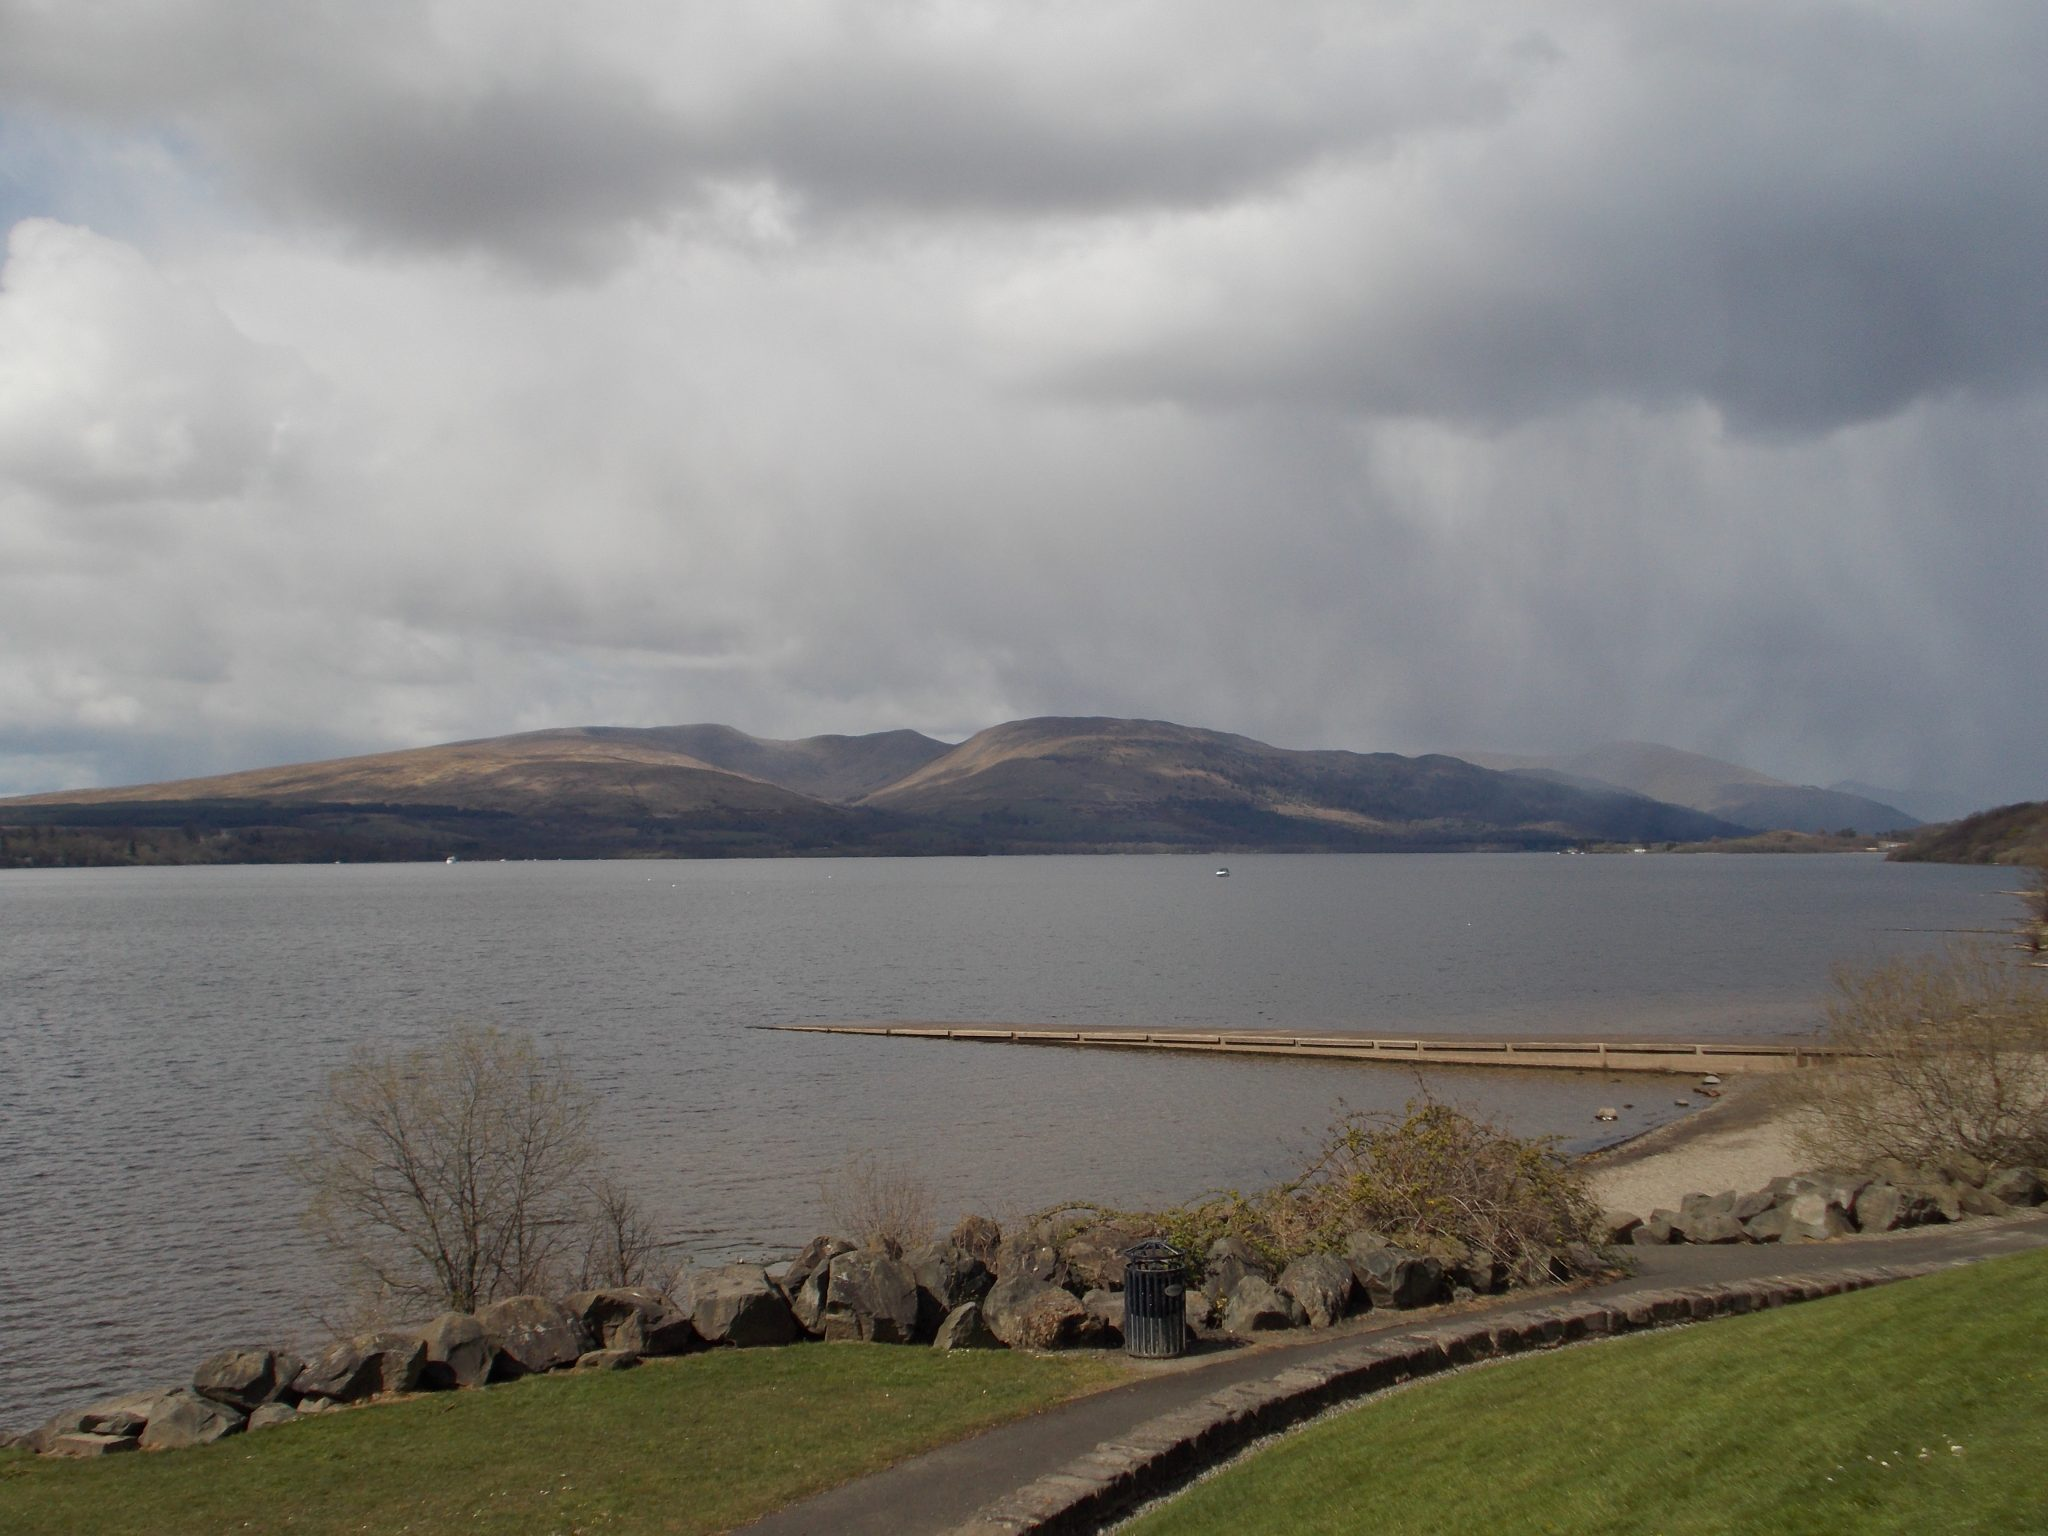 Loch Lomond from Balloch Country Park